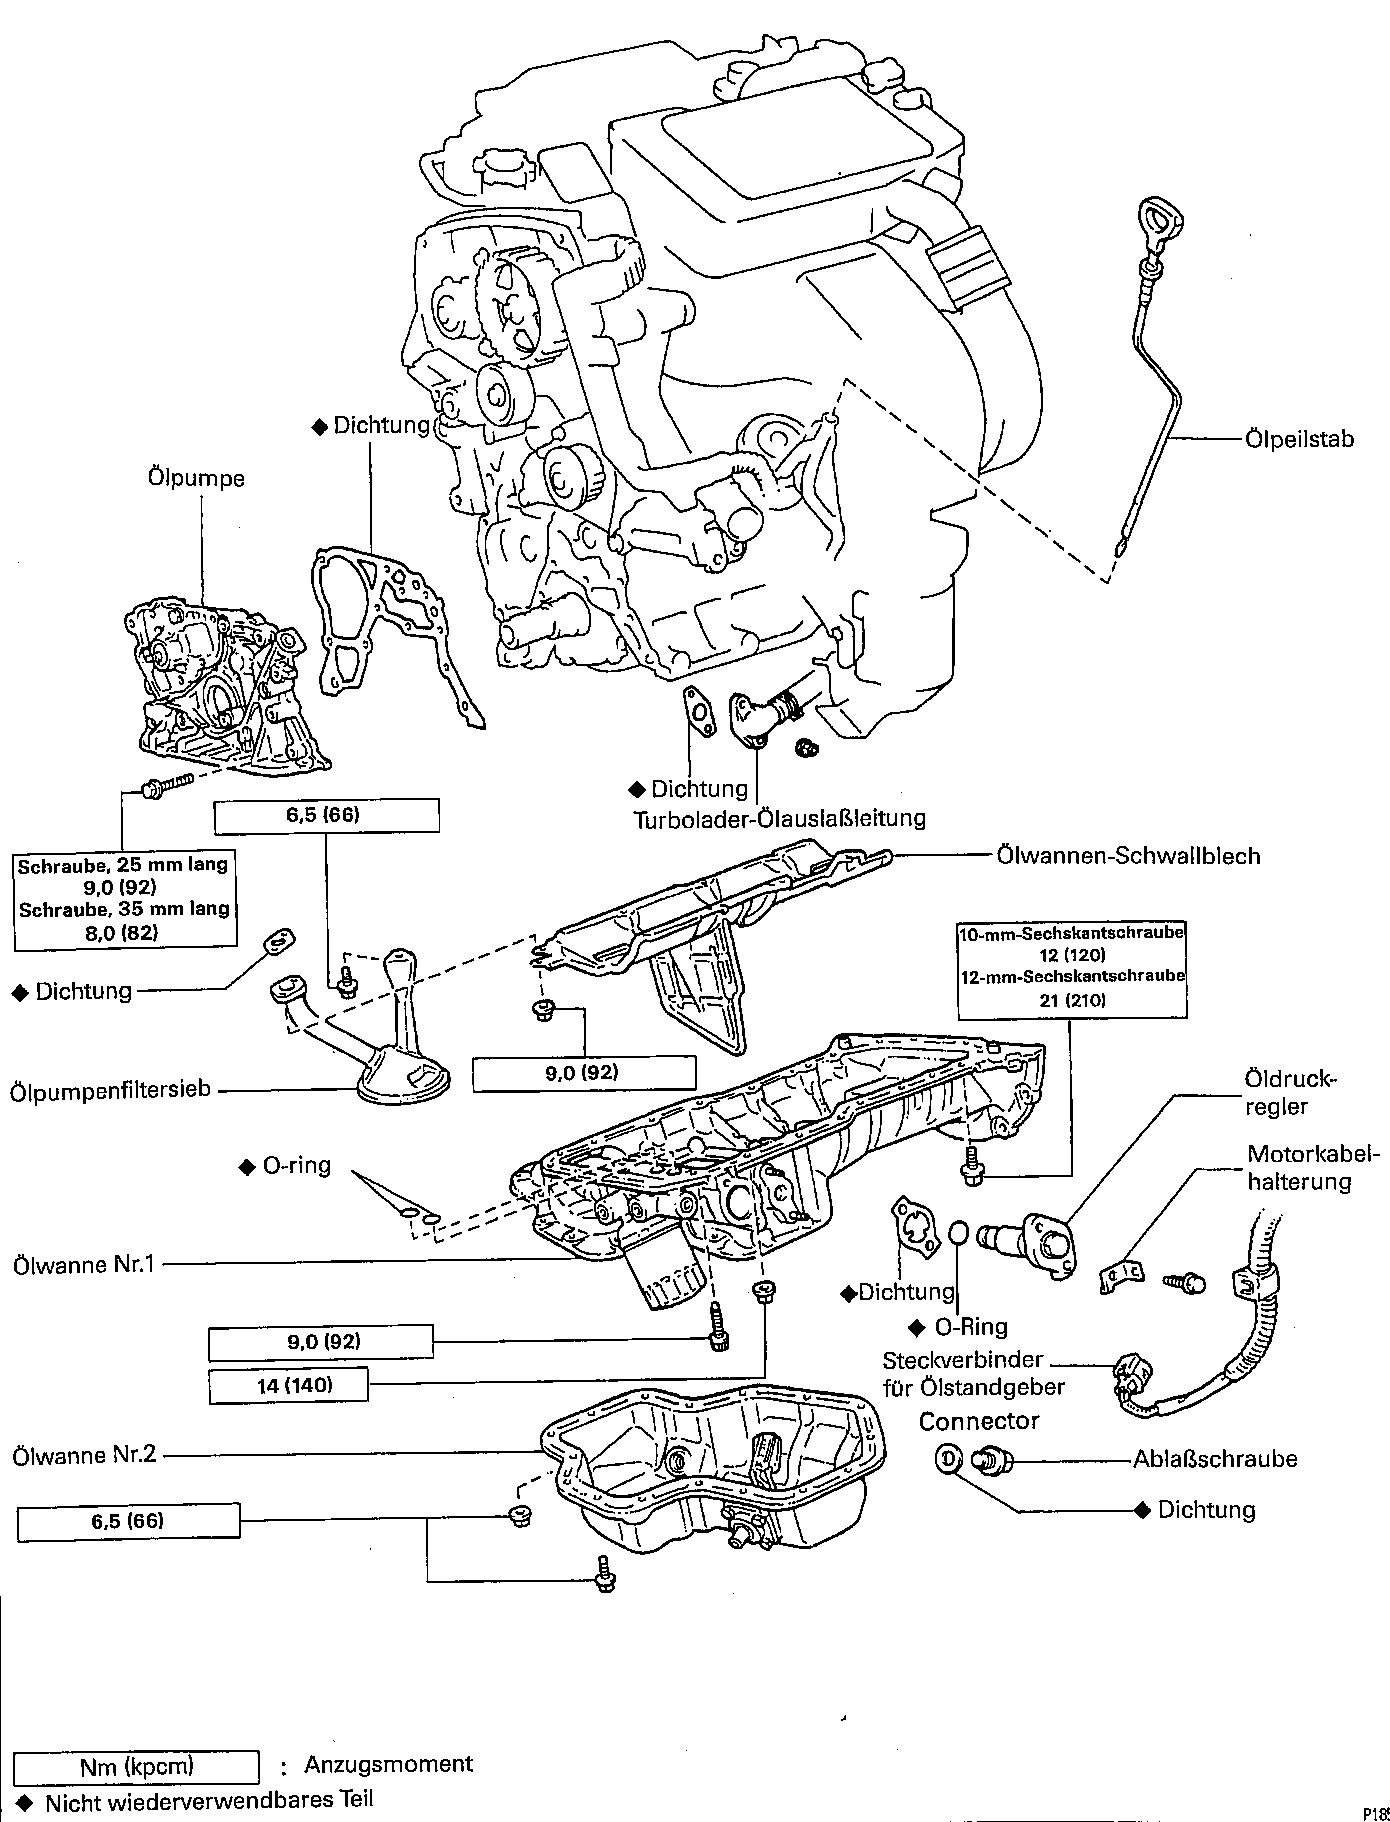 Full Documented Forged Engine Rebuild